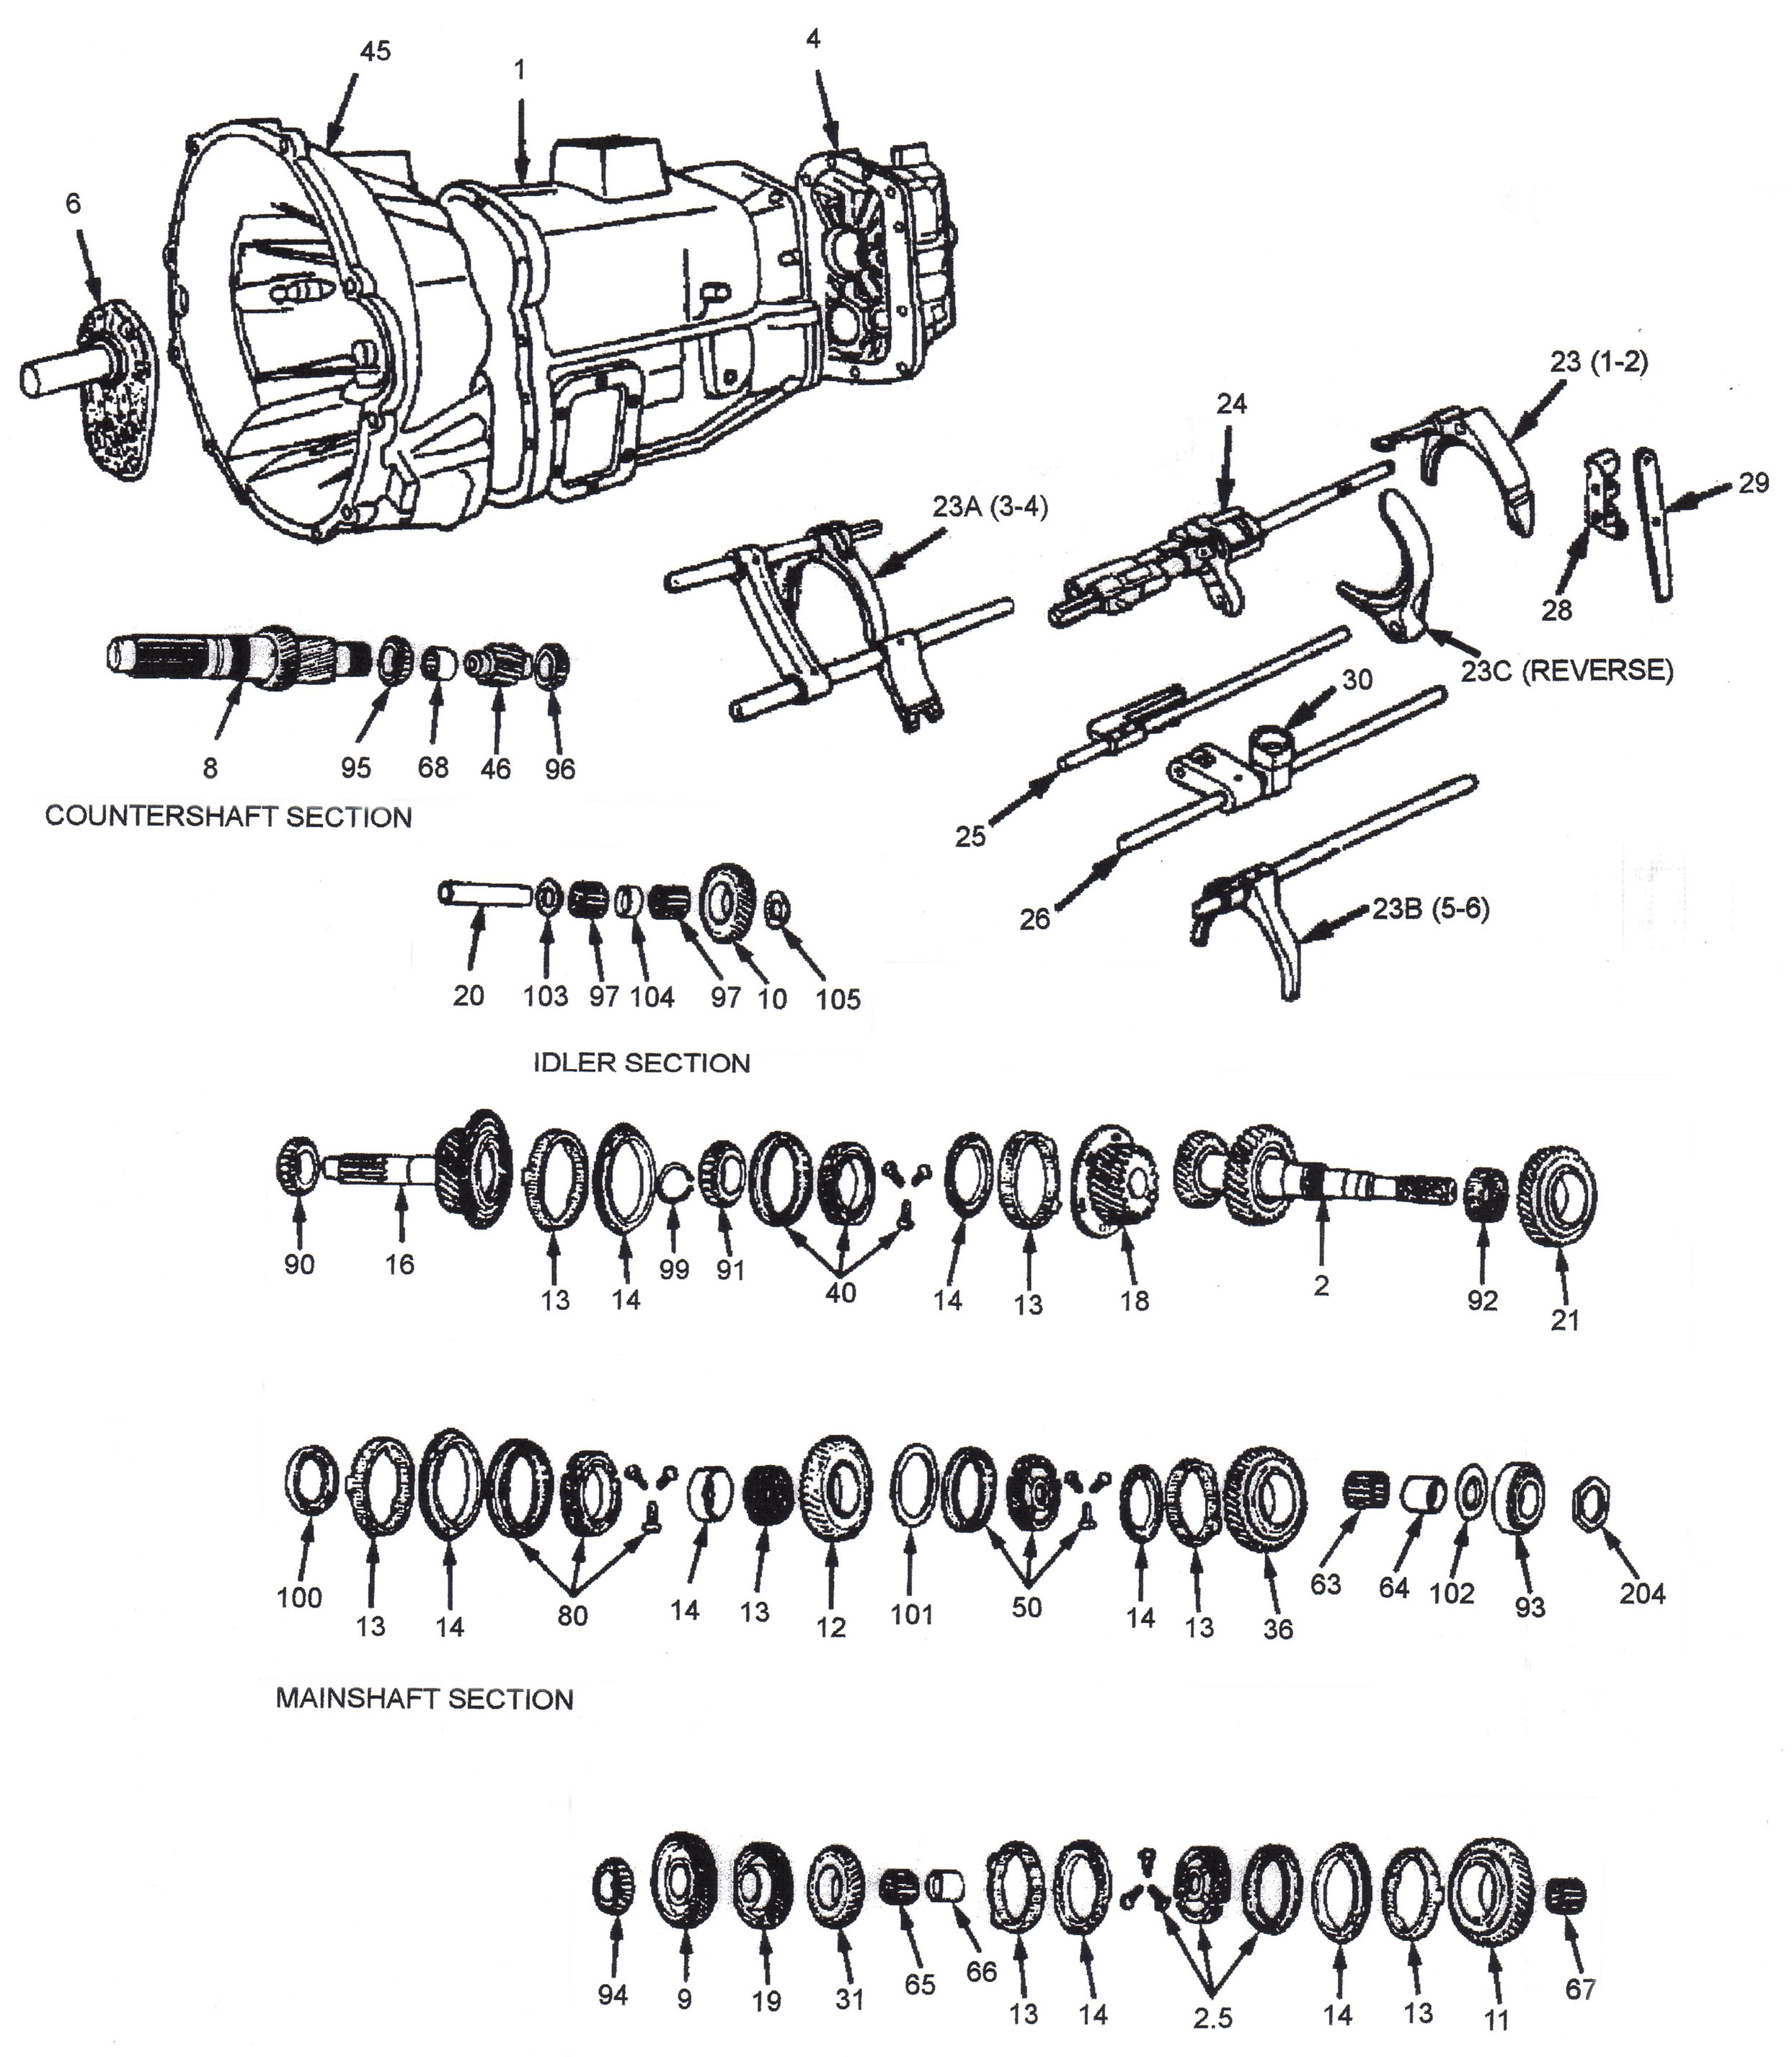 Dodge Parts Diagrams Wiring Diagram Data Distributor Nv5600 Transmission Six Speed Manual Rebuild Kits Oem